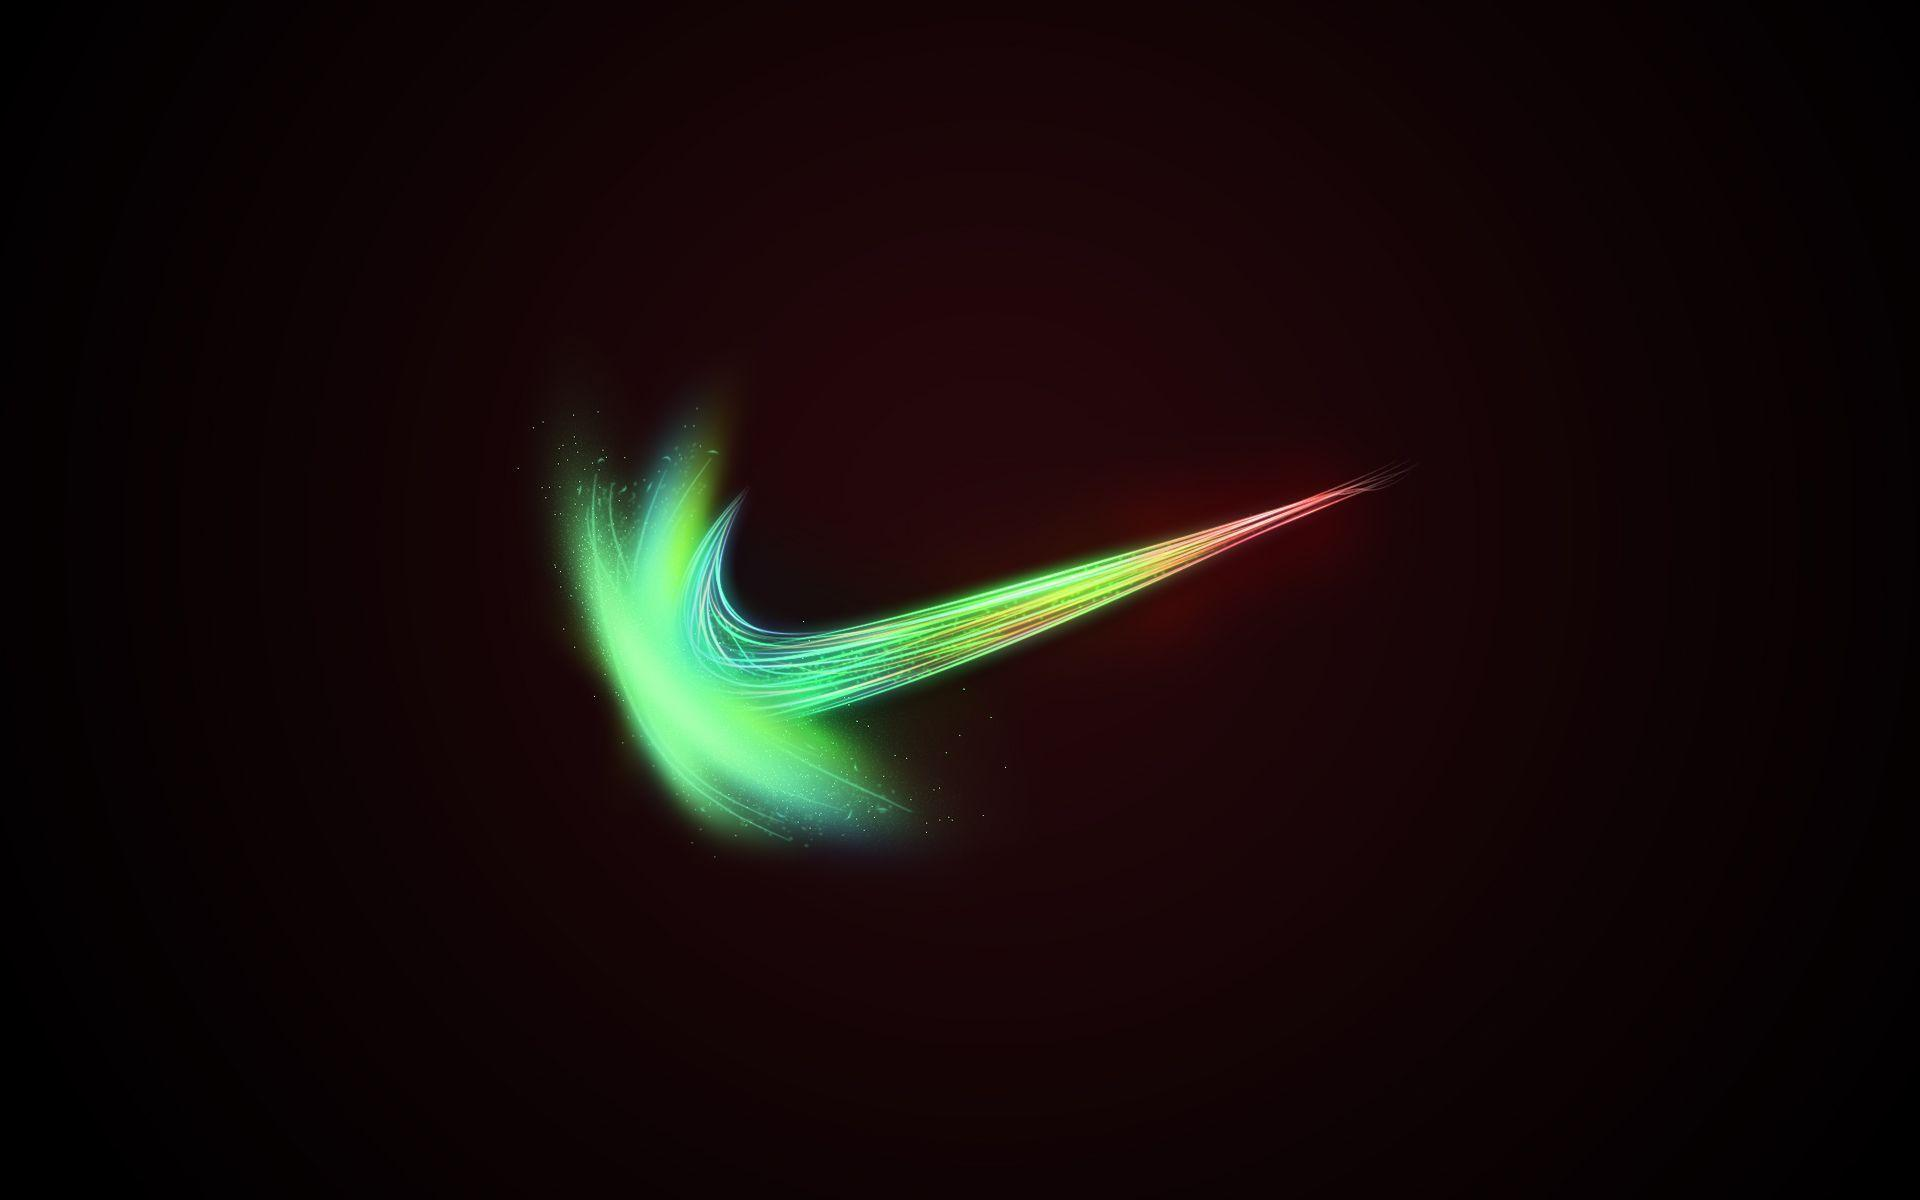 Hd wallpaper nike - Nike 3d Hd Wallpapers Free Download Wallpapers Backgrounds